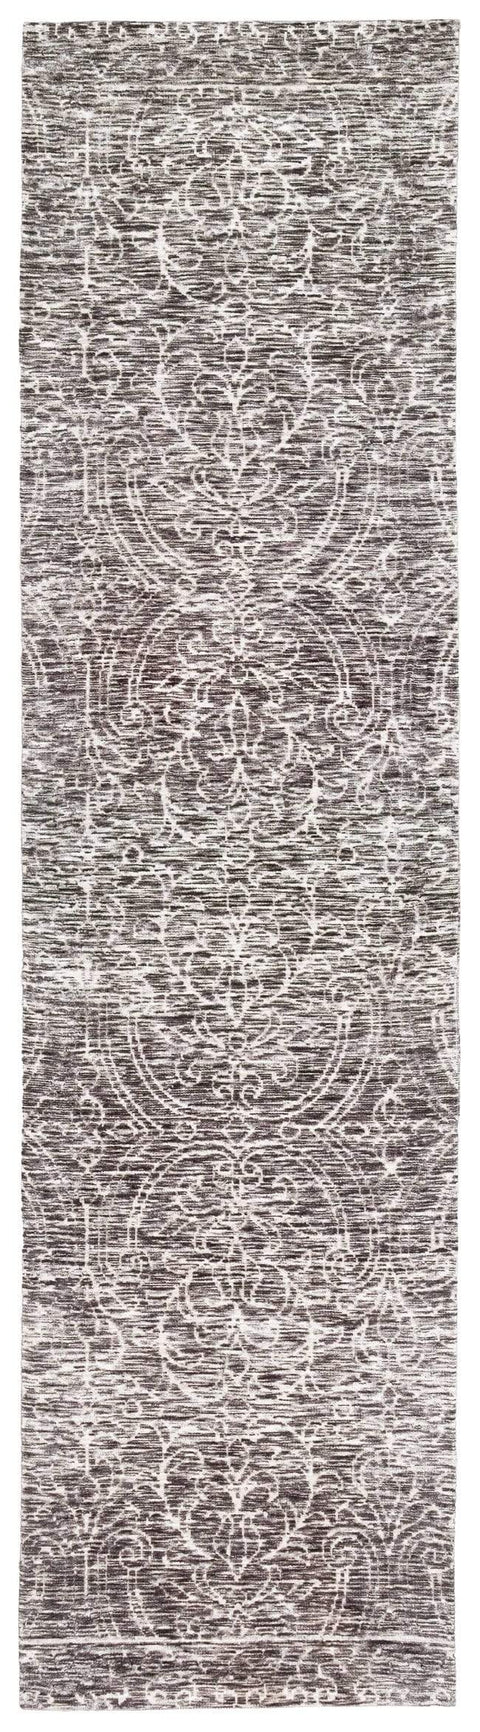 Avery Charcoal Grey and Ivory Textured Floral Motif Runner Rug